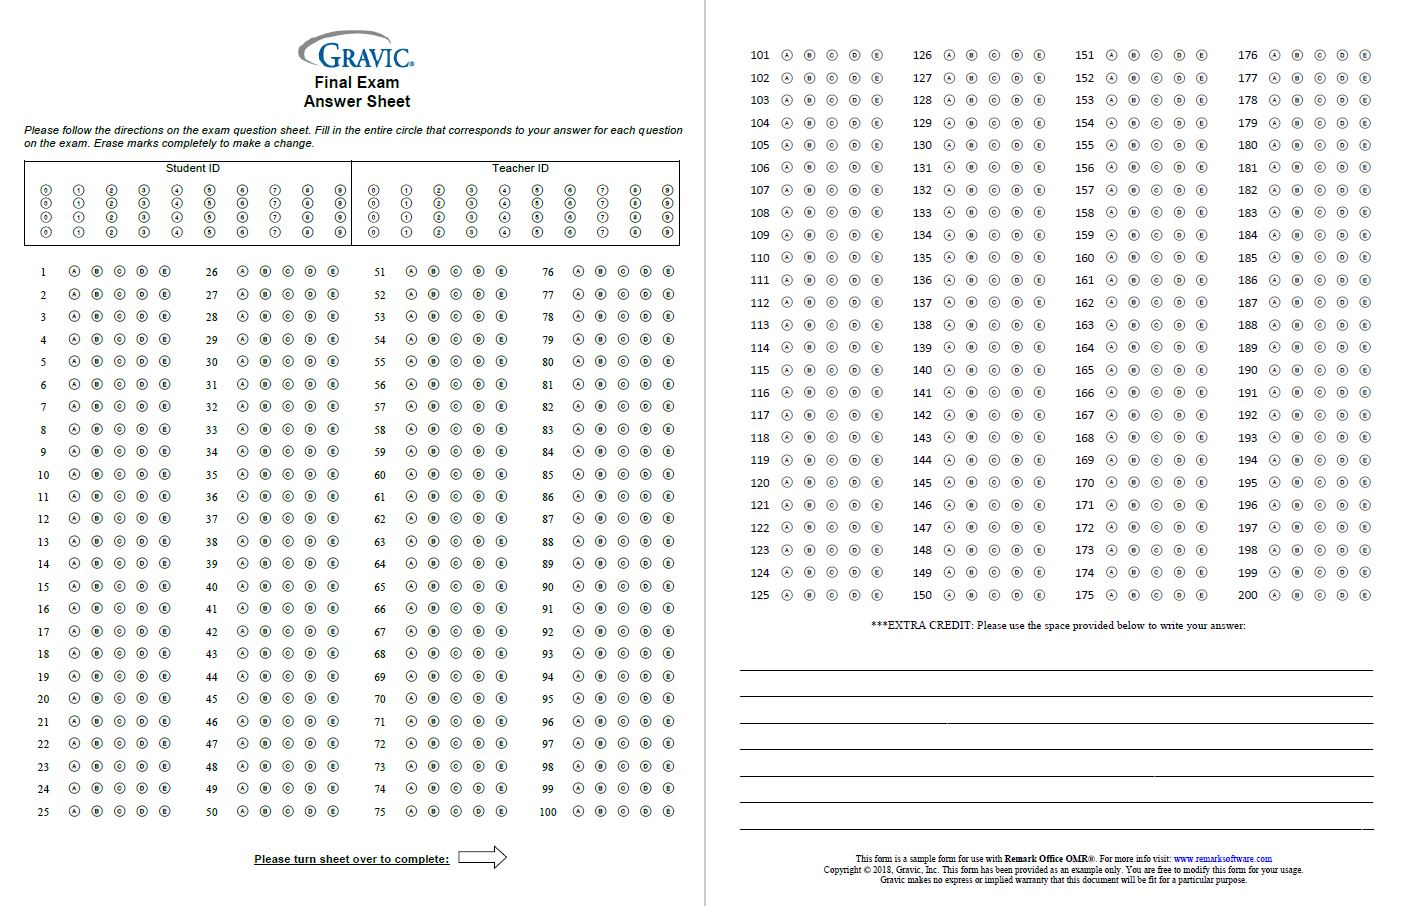 200 Question Test Answer Sheet with Extra Credit and Grid ID ...